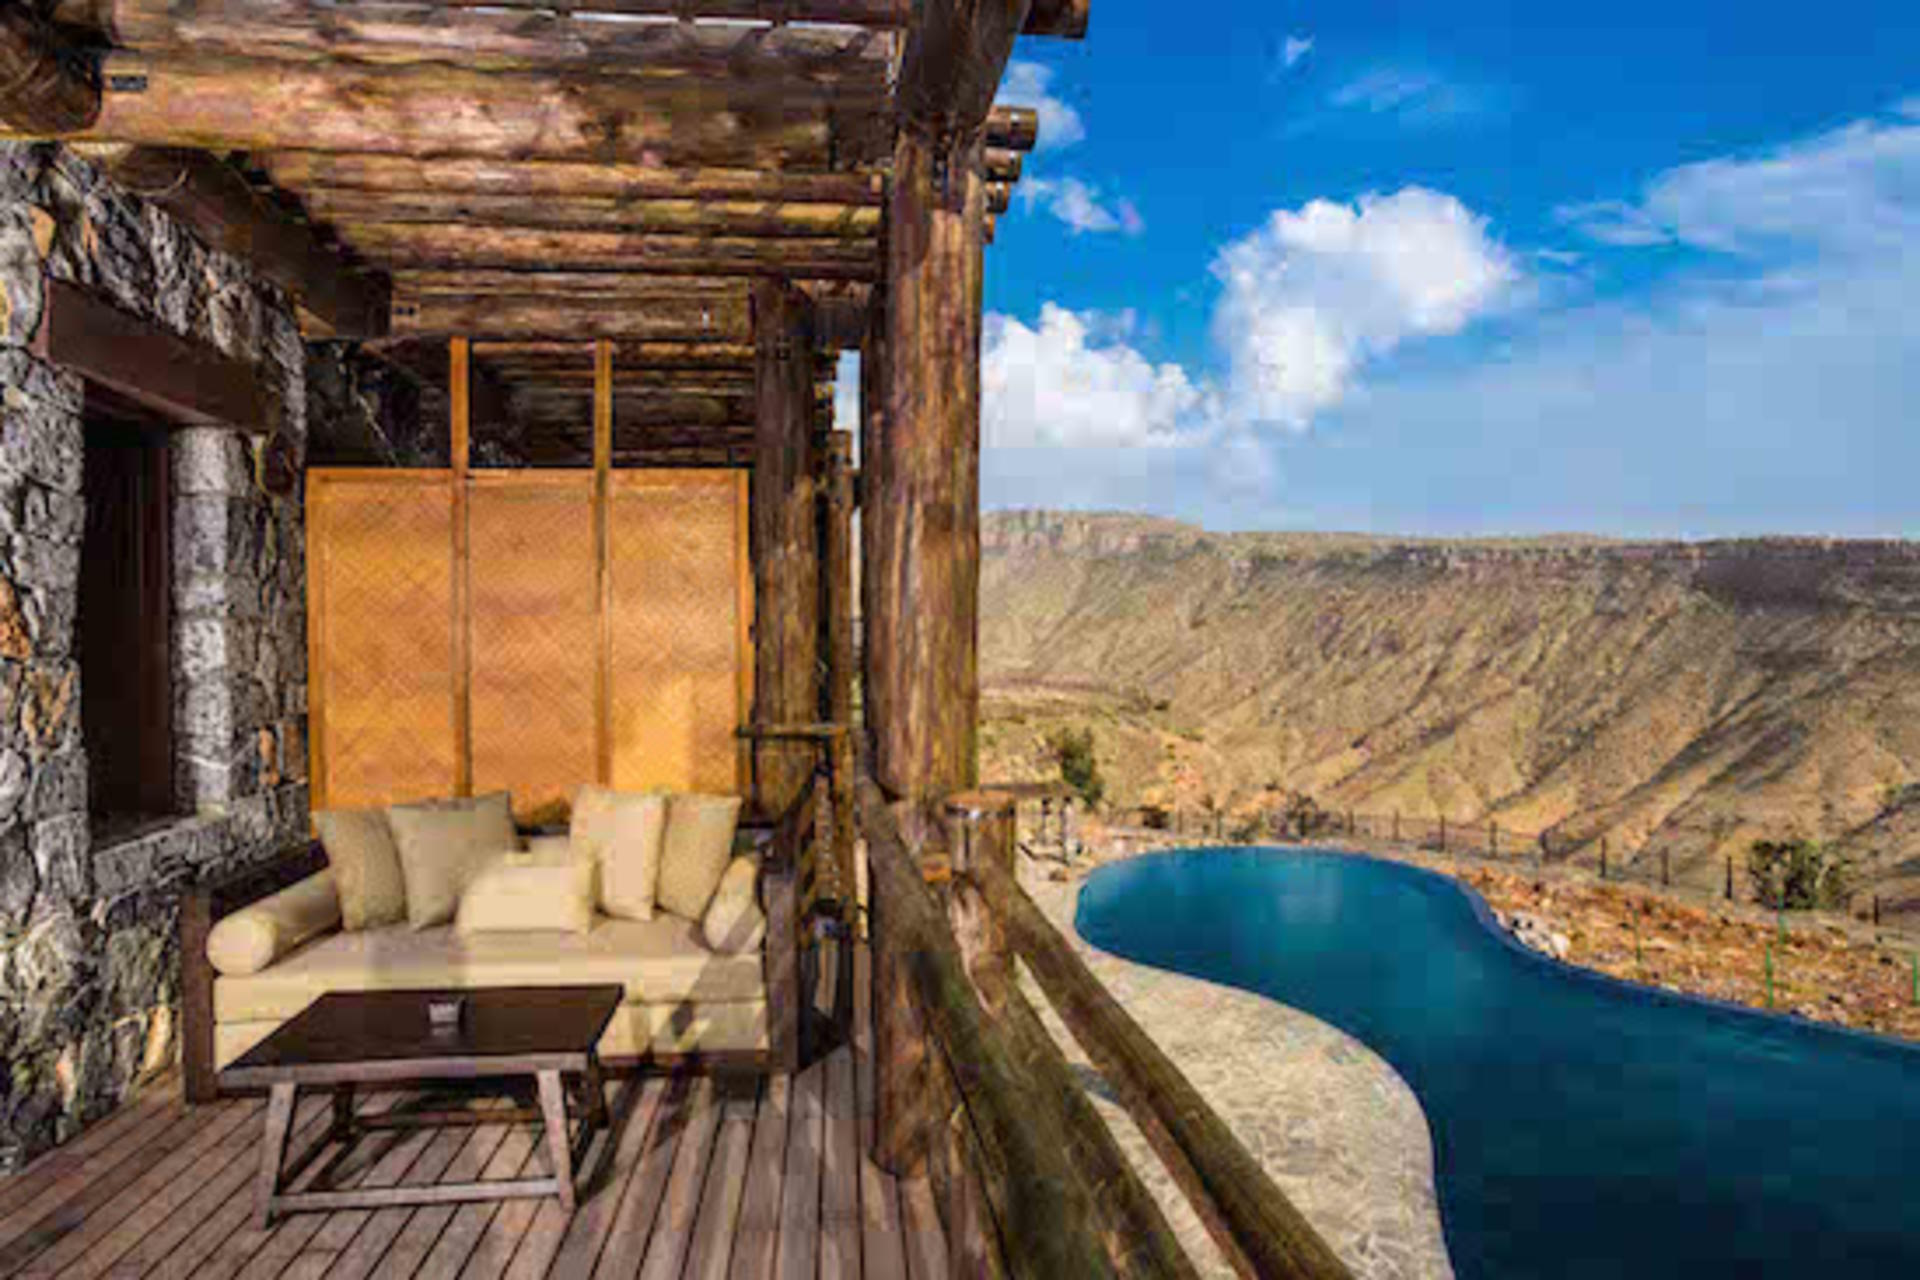 Alila Jabal Akhdar - Ridge View Balcony